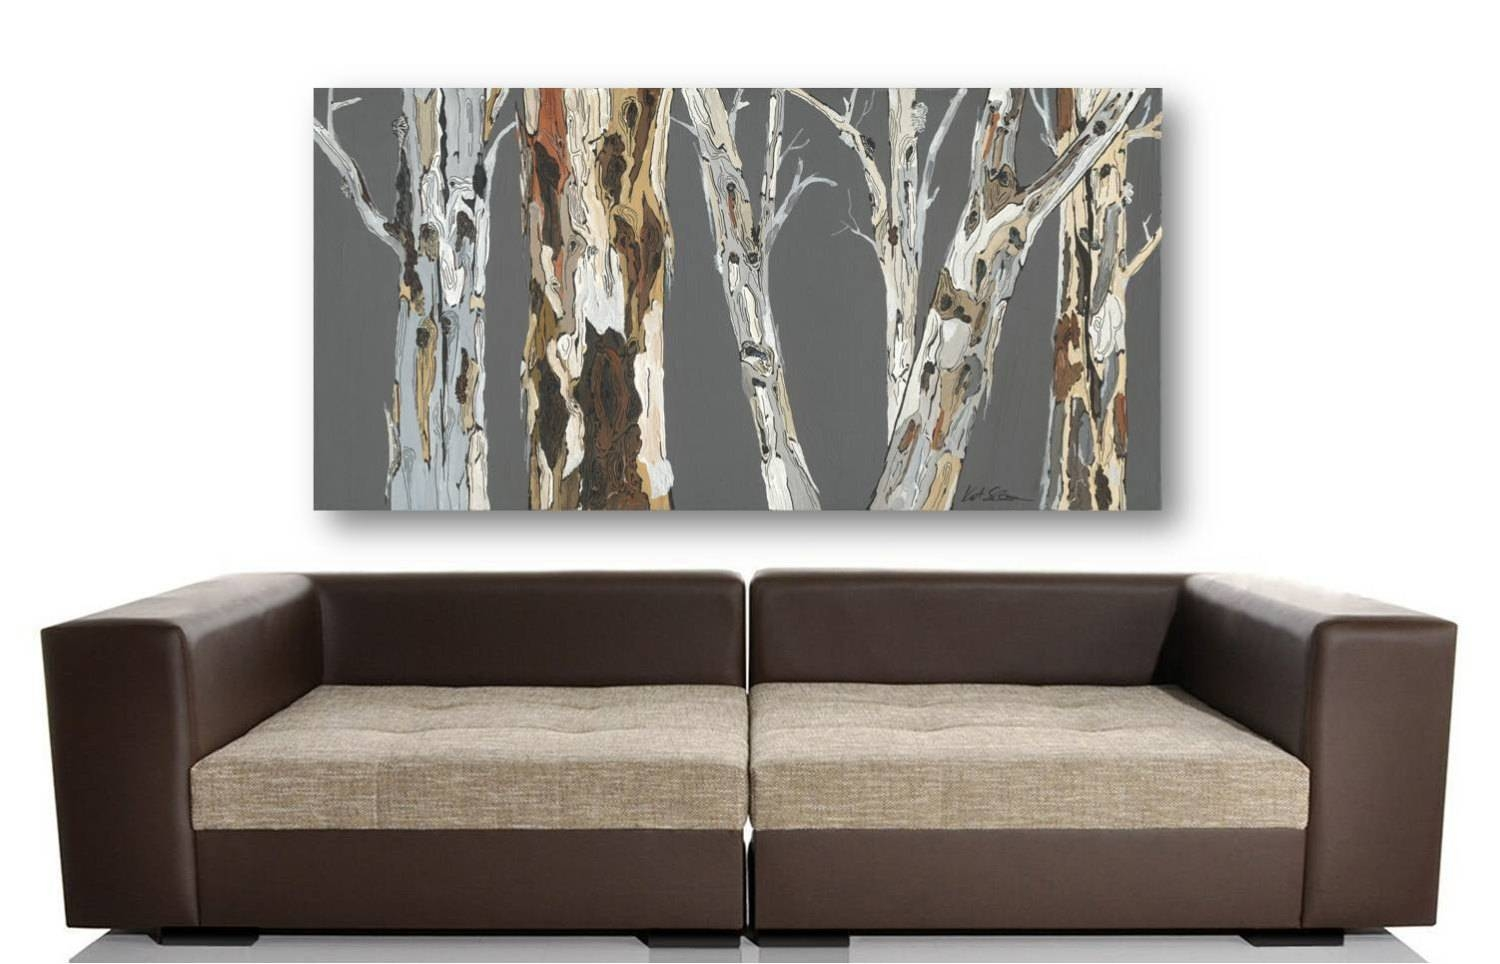 Wall Art: Breathtaking Images Of Large Horizontal Wall Art For Most Up To Date Large Horizontal Wall Art (View 2 of 20)